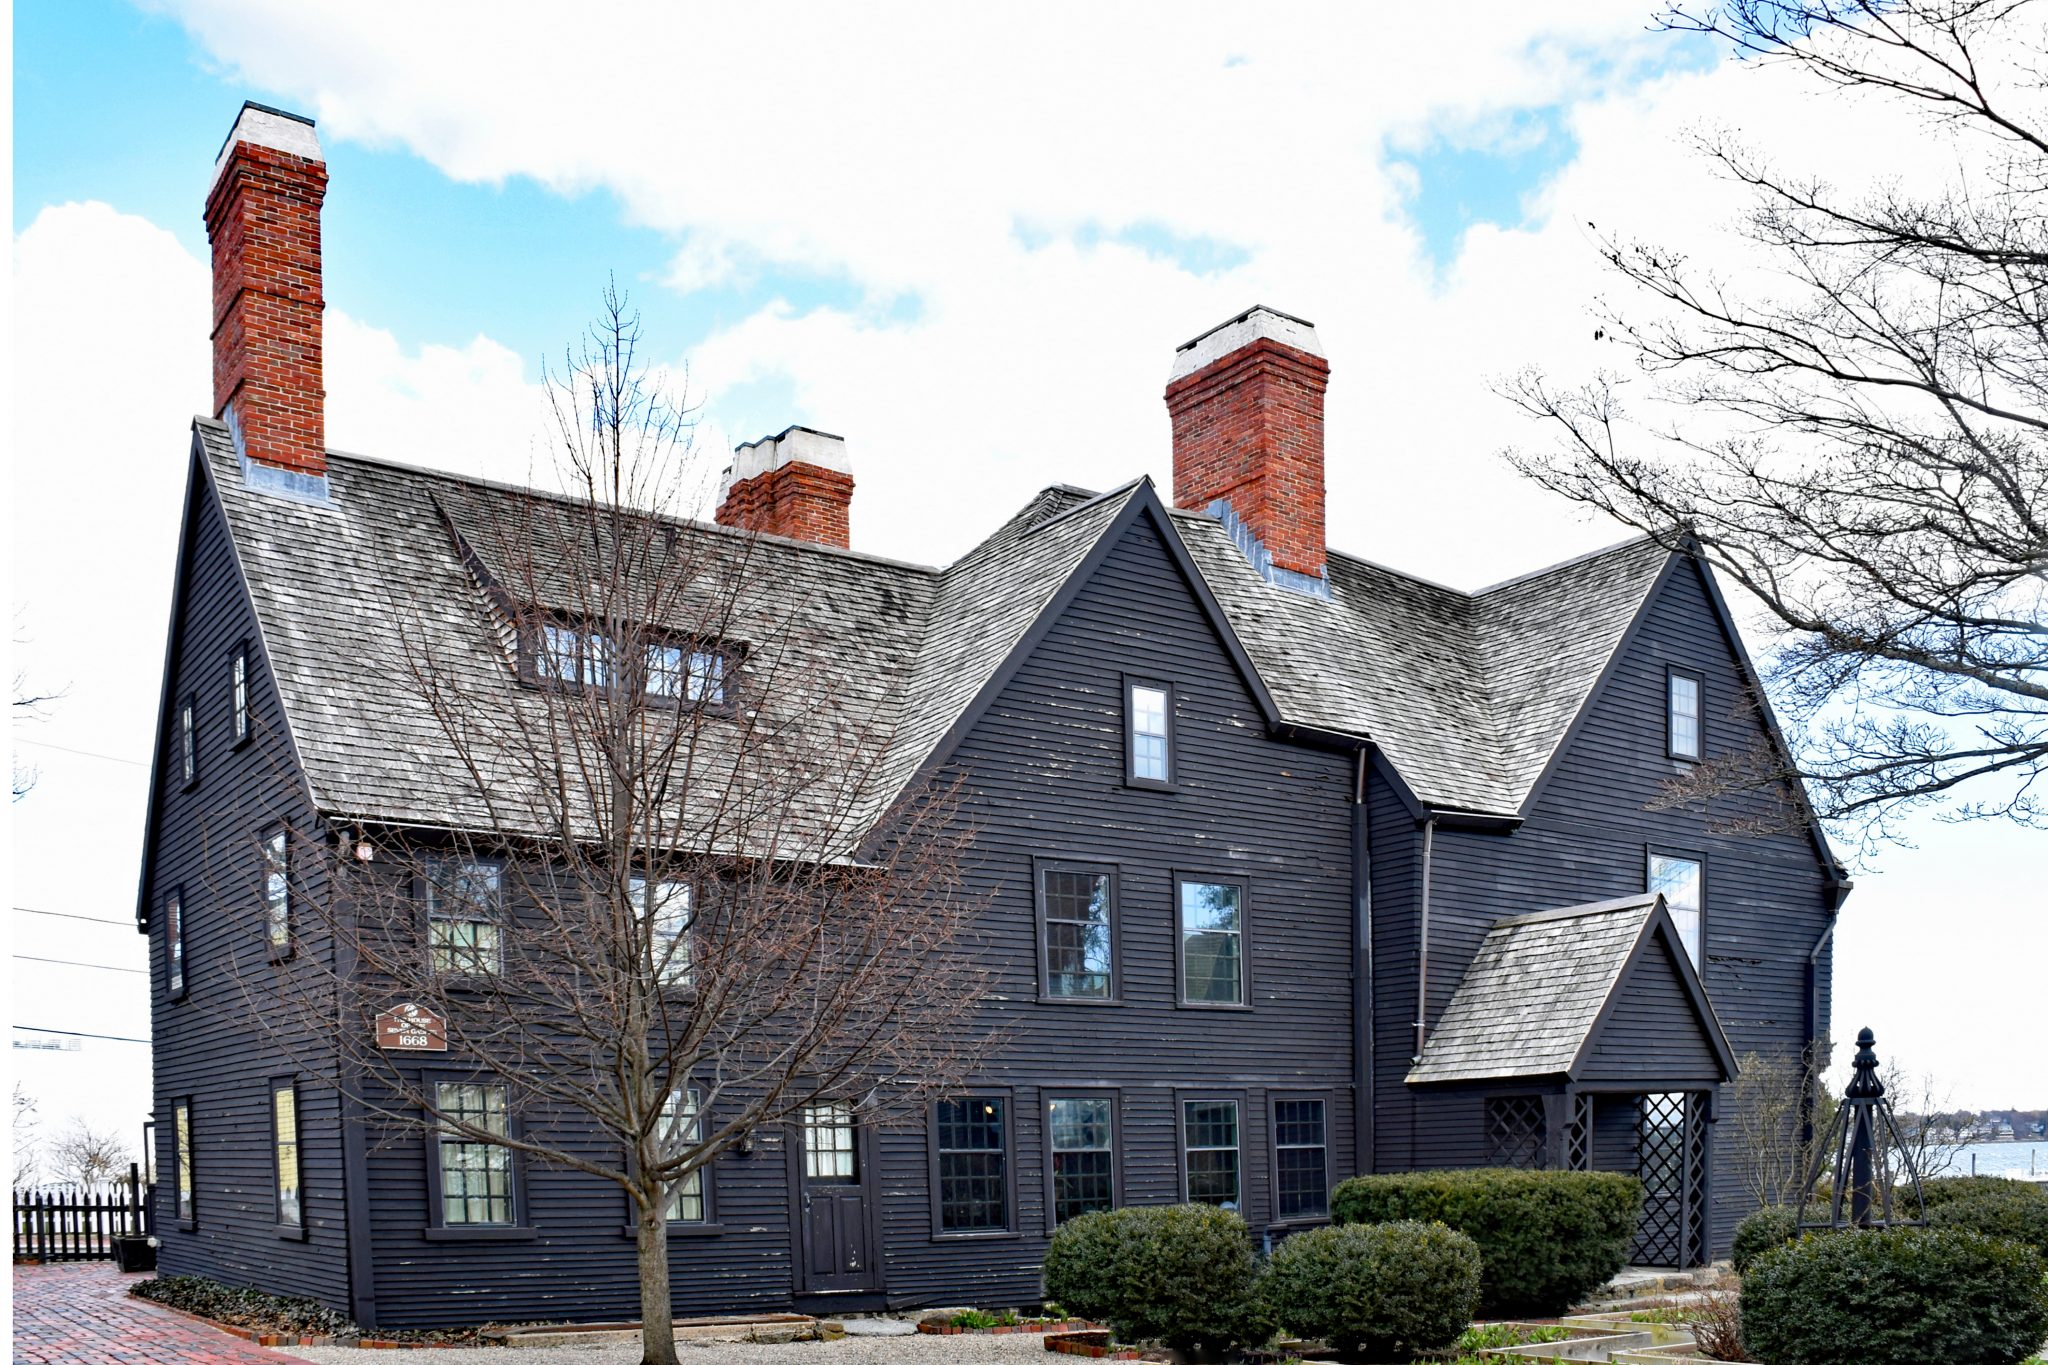 The House of Seven Gables in Salem MA